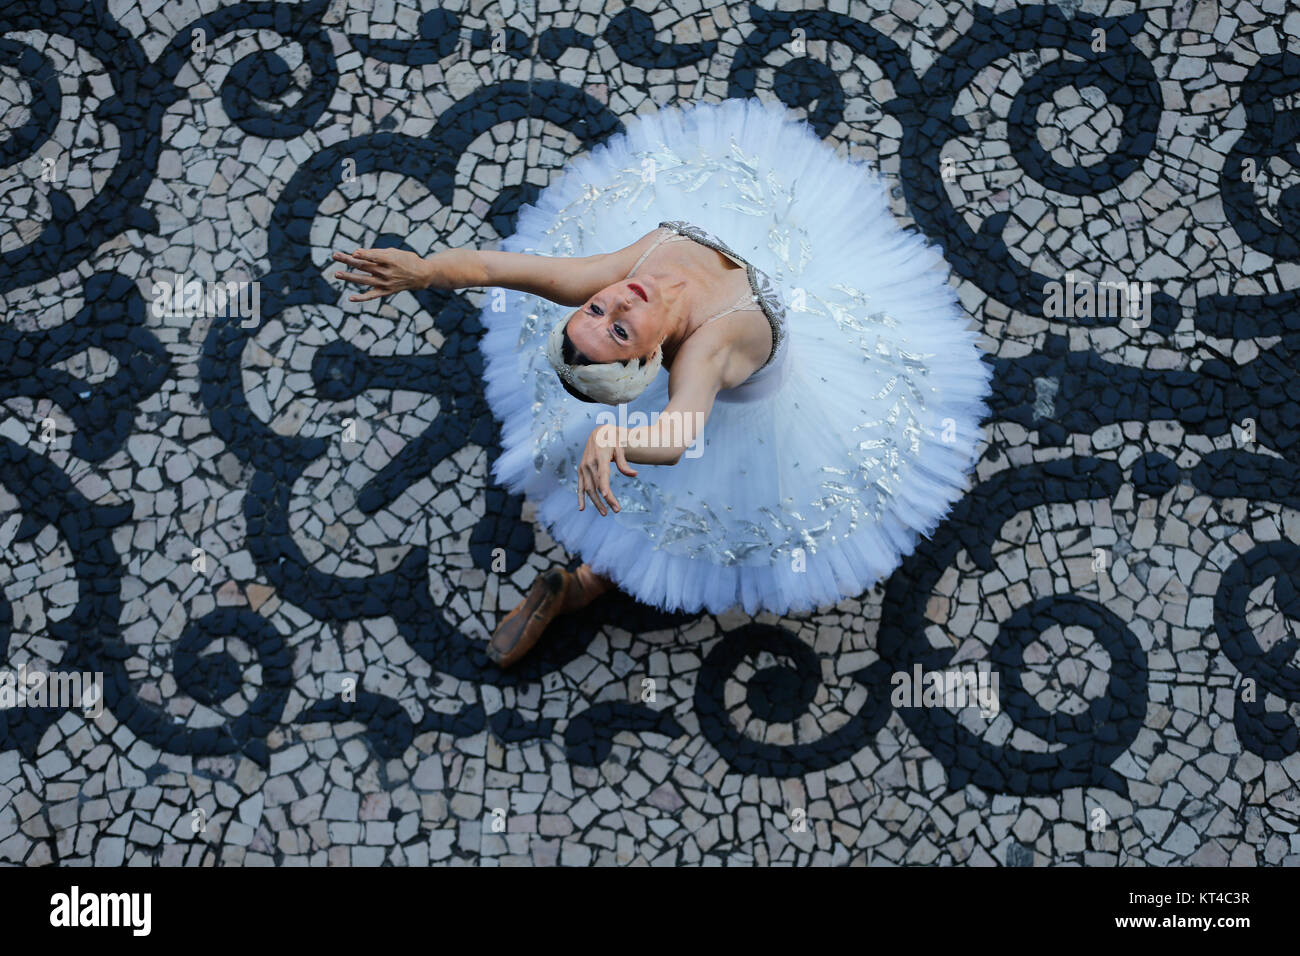 Ballerina Cecilia Kerche performs during a protest against government funding cuts to the arts and culture outside - Stock Image